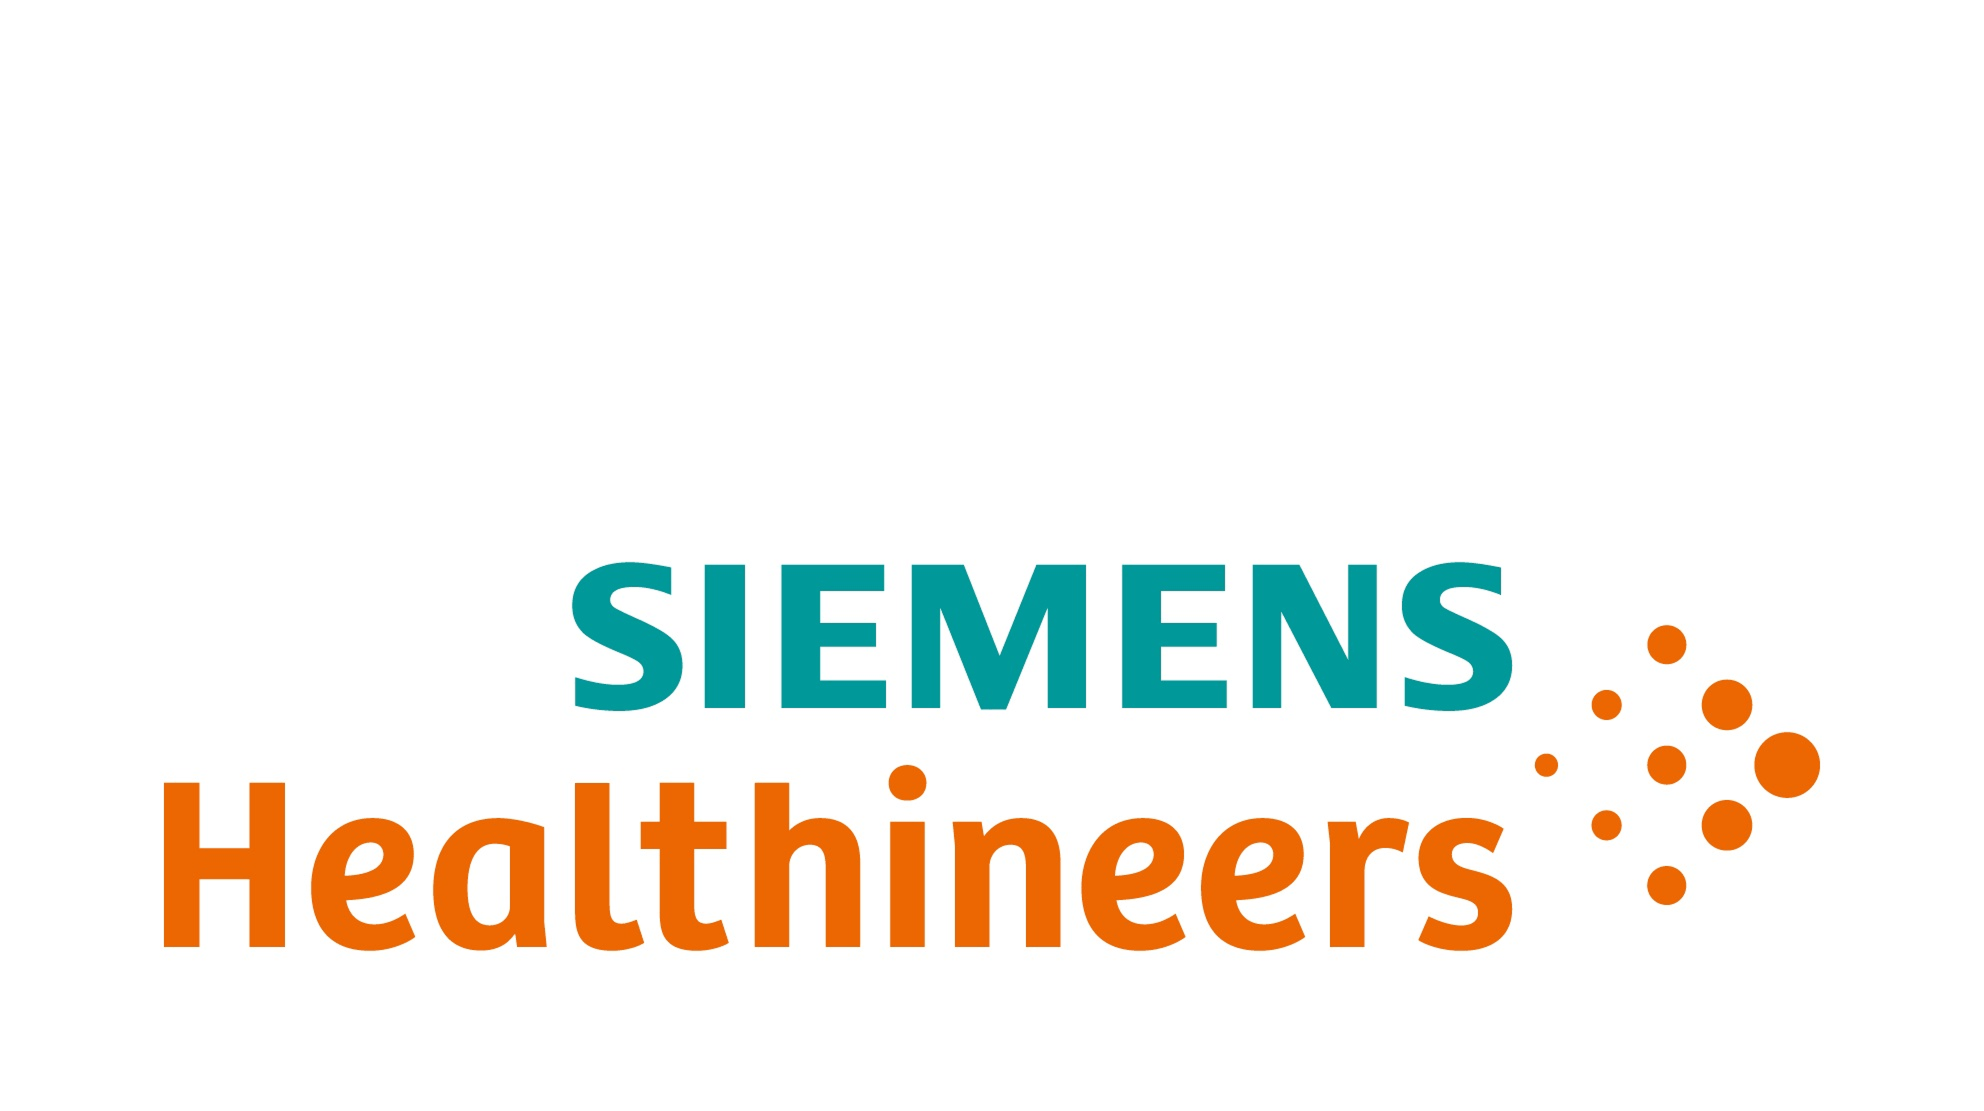 Siemens Healthcare Limited